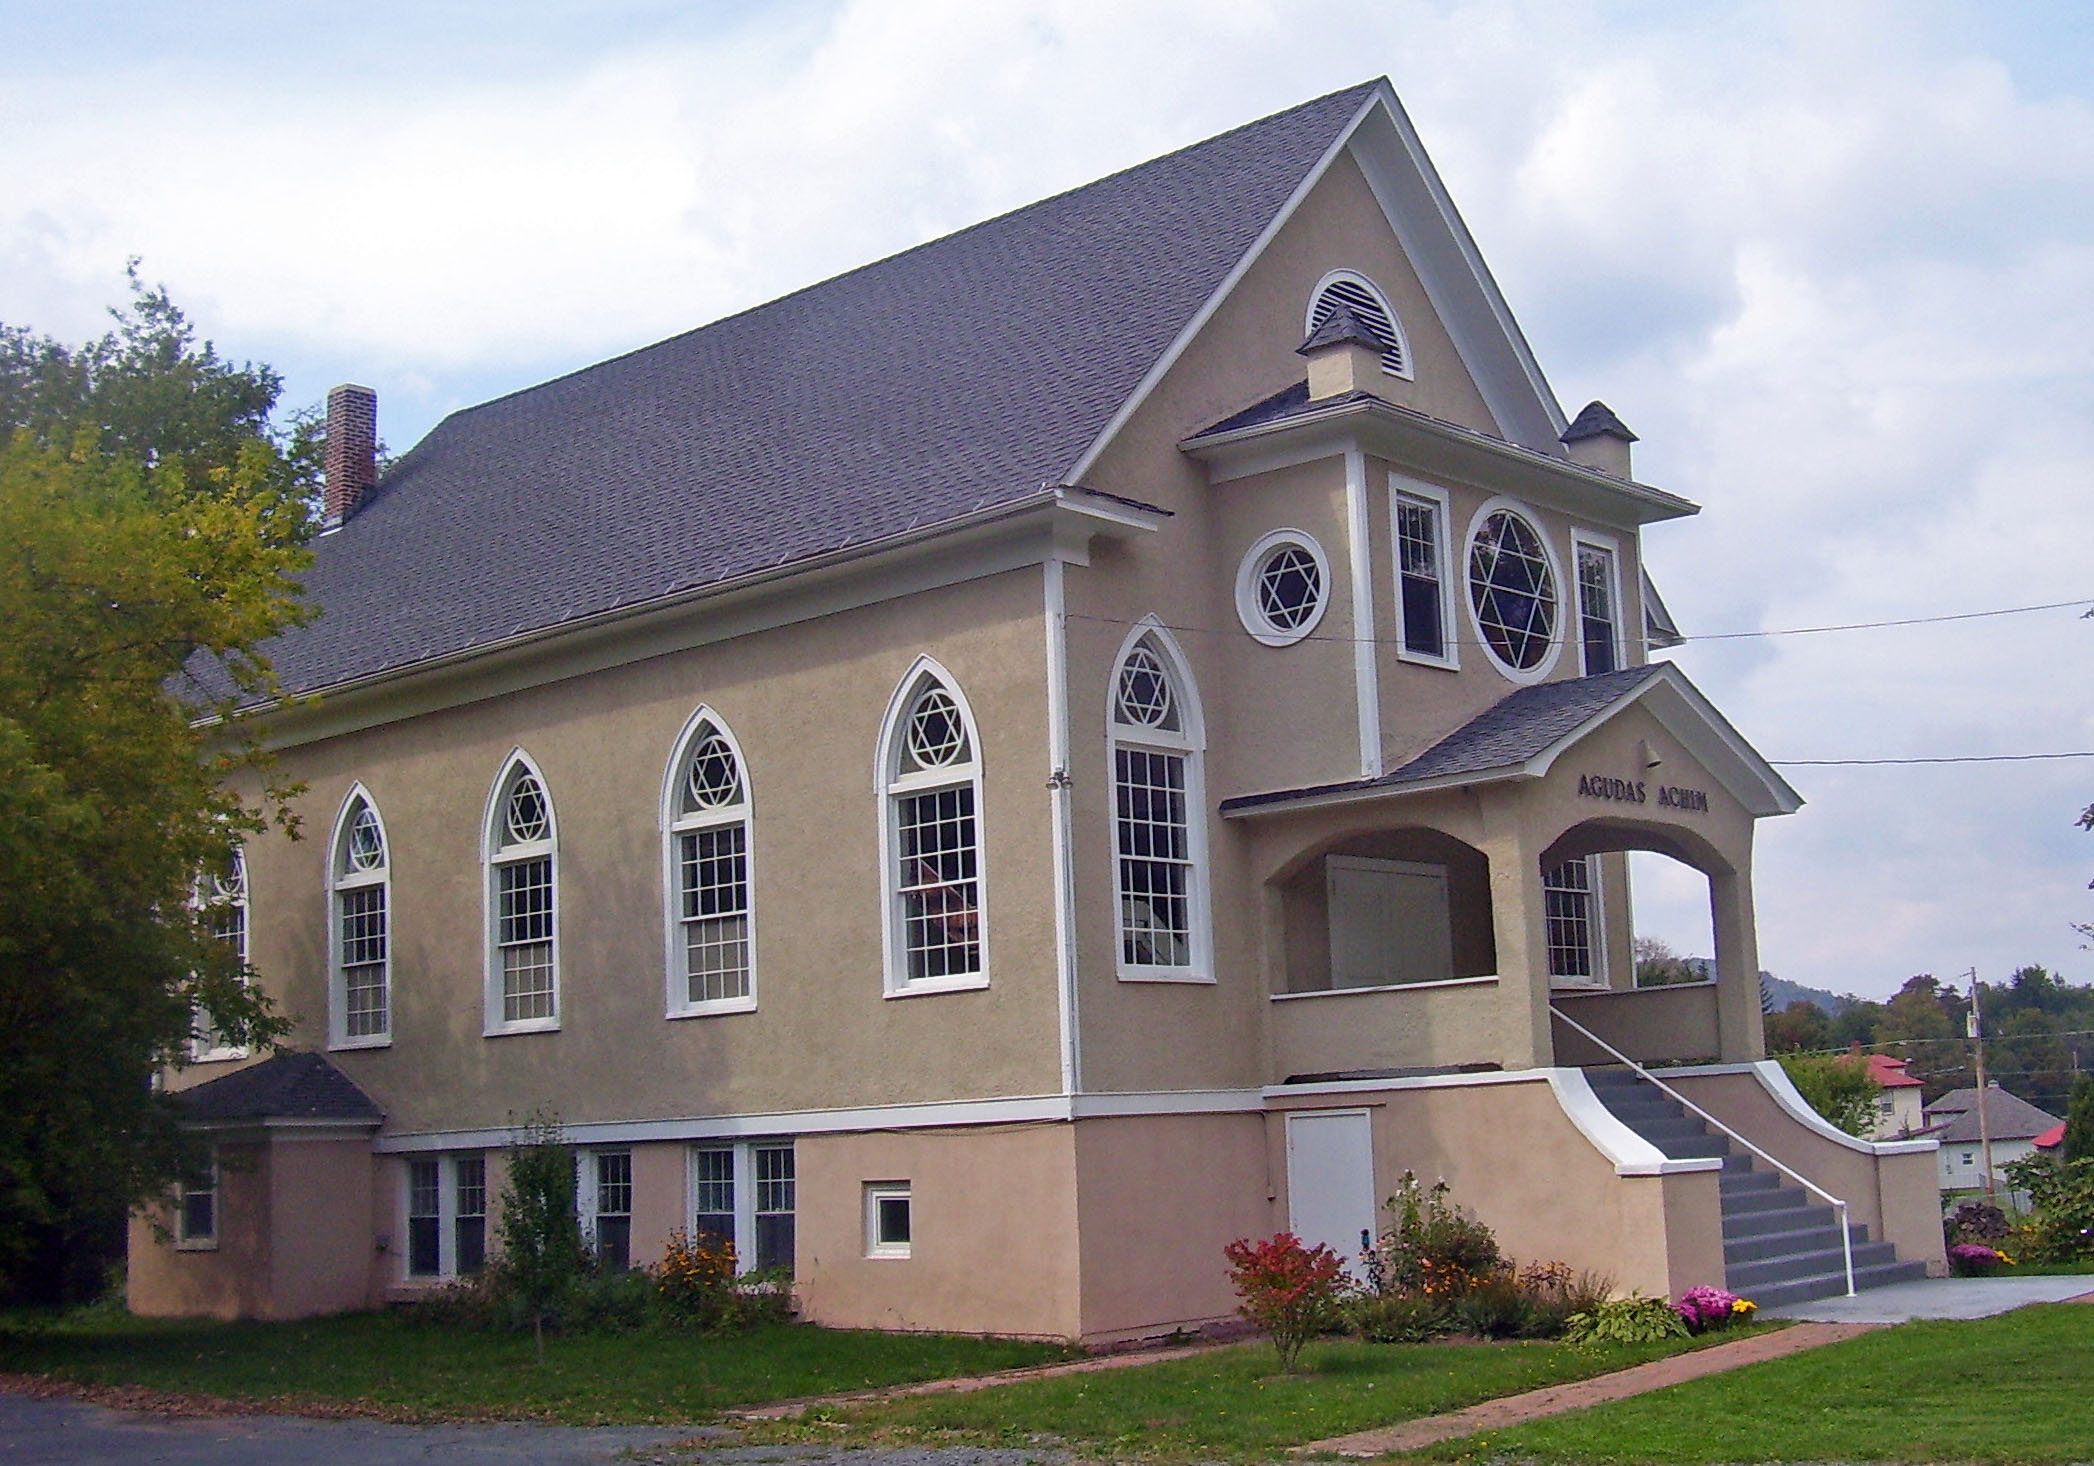 livingston manor buddhist personals Herbert c bryant funeral home in livingston manor, new york: info on funeral services, sending flowers, address / directions, & planning.